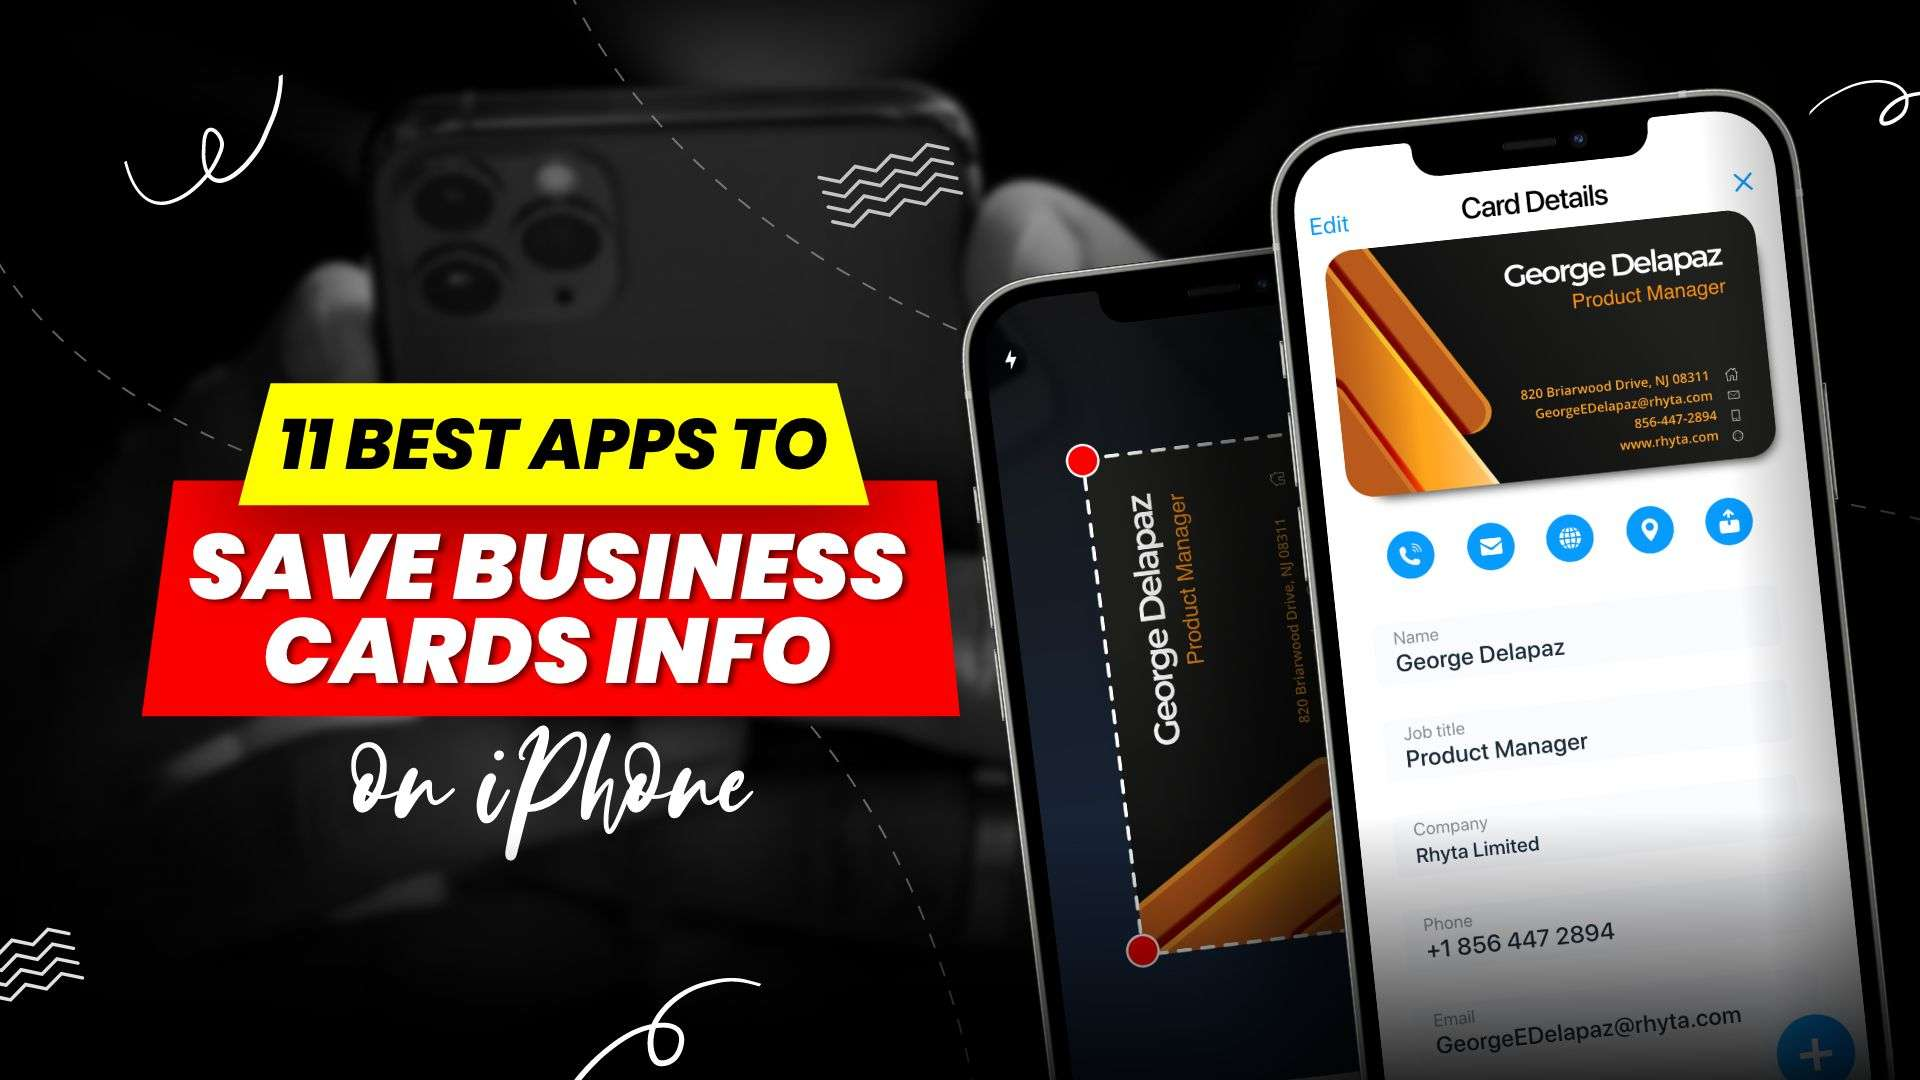 11 Best apps to save business cards info on iPhone